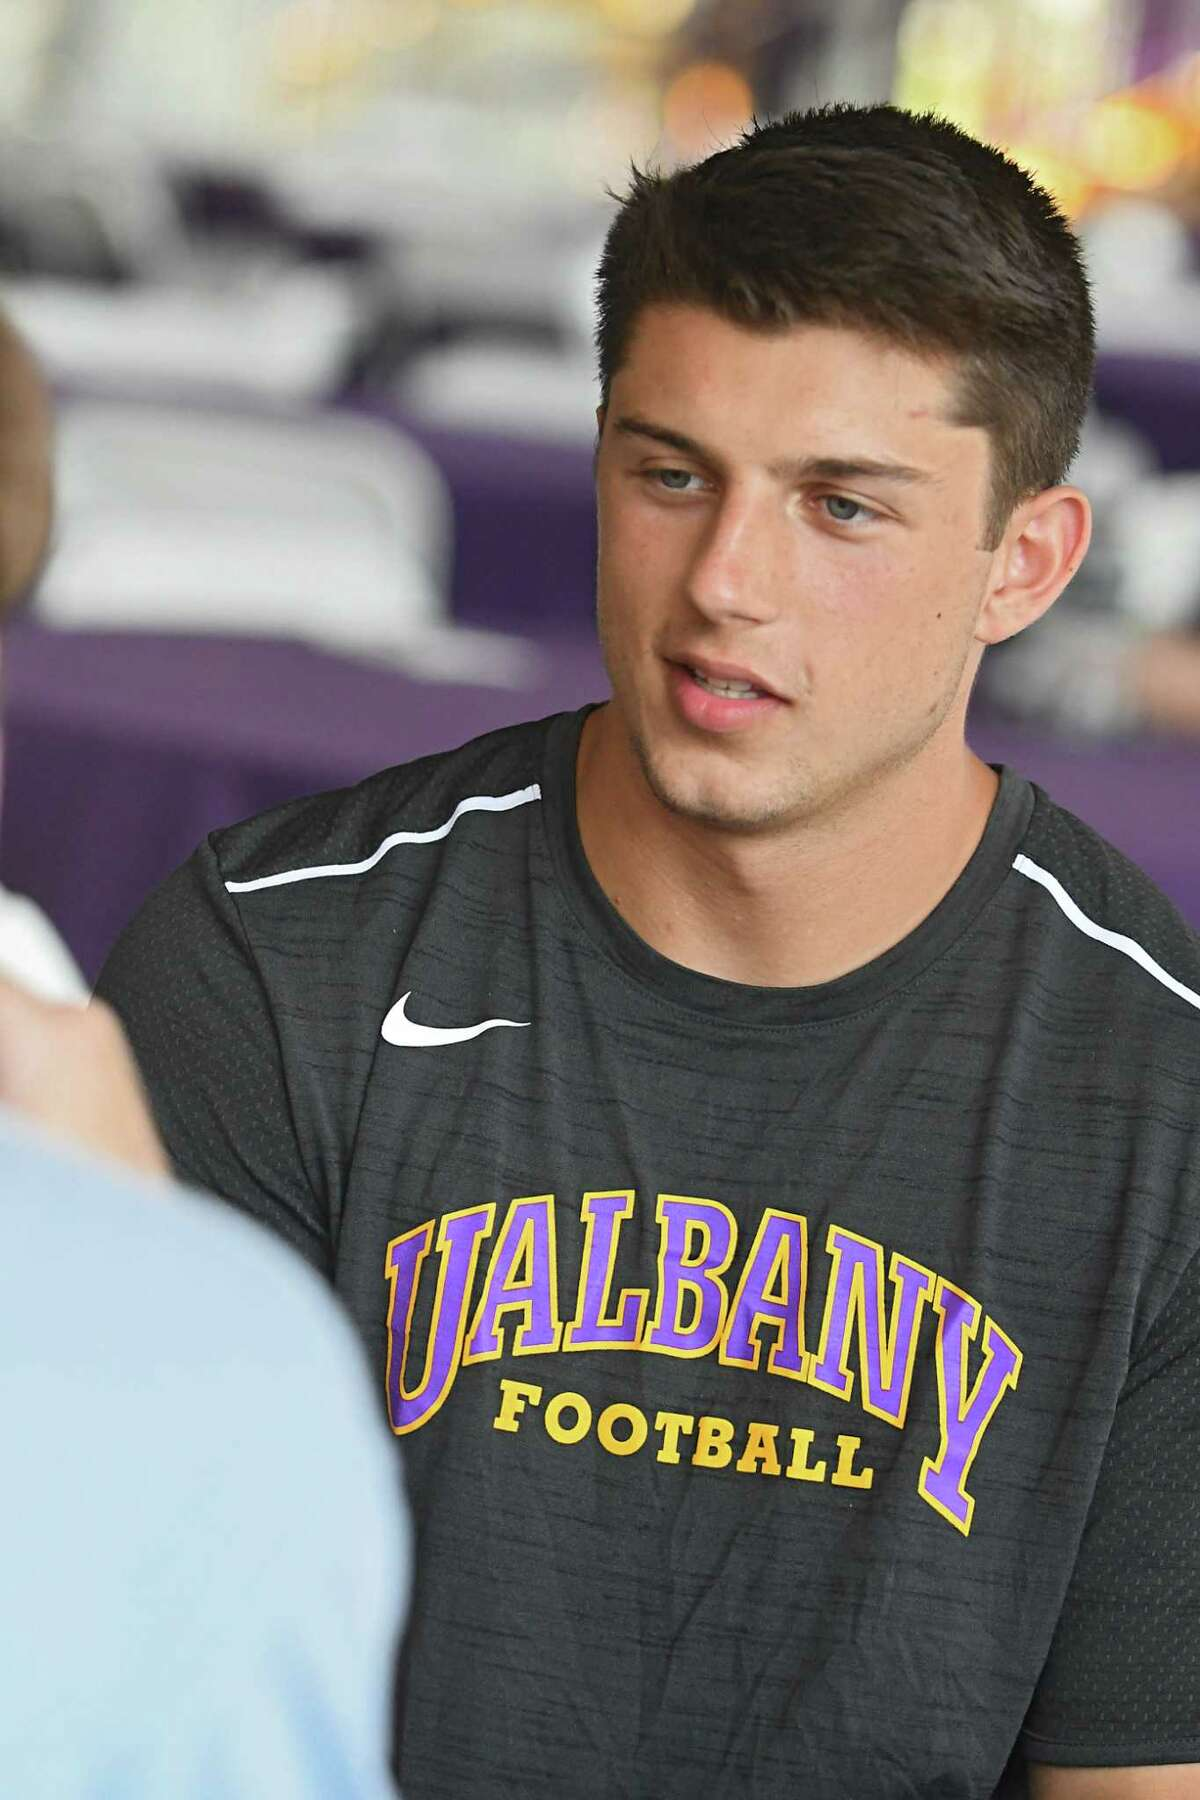 University at Albany quarterback Neven Sussman talks with a reporter during UAlbany football media day at University at Albany on Tues. Aug. 1, 2017 in Albany, N.Y. (Lori Van Buren / Times Union)